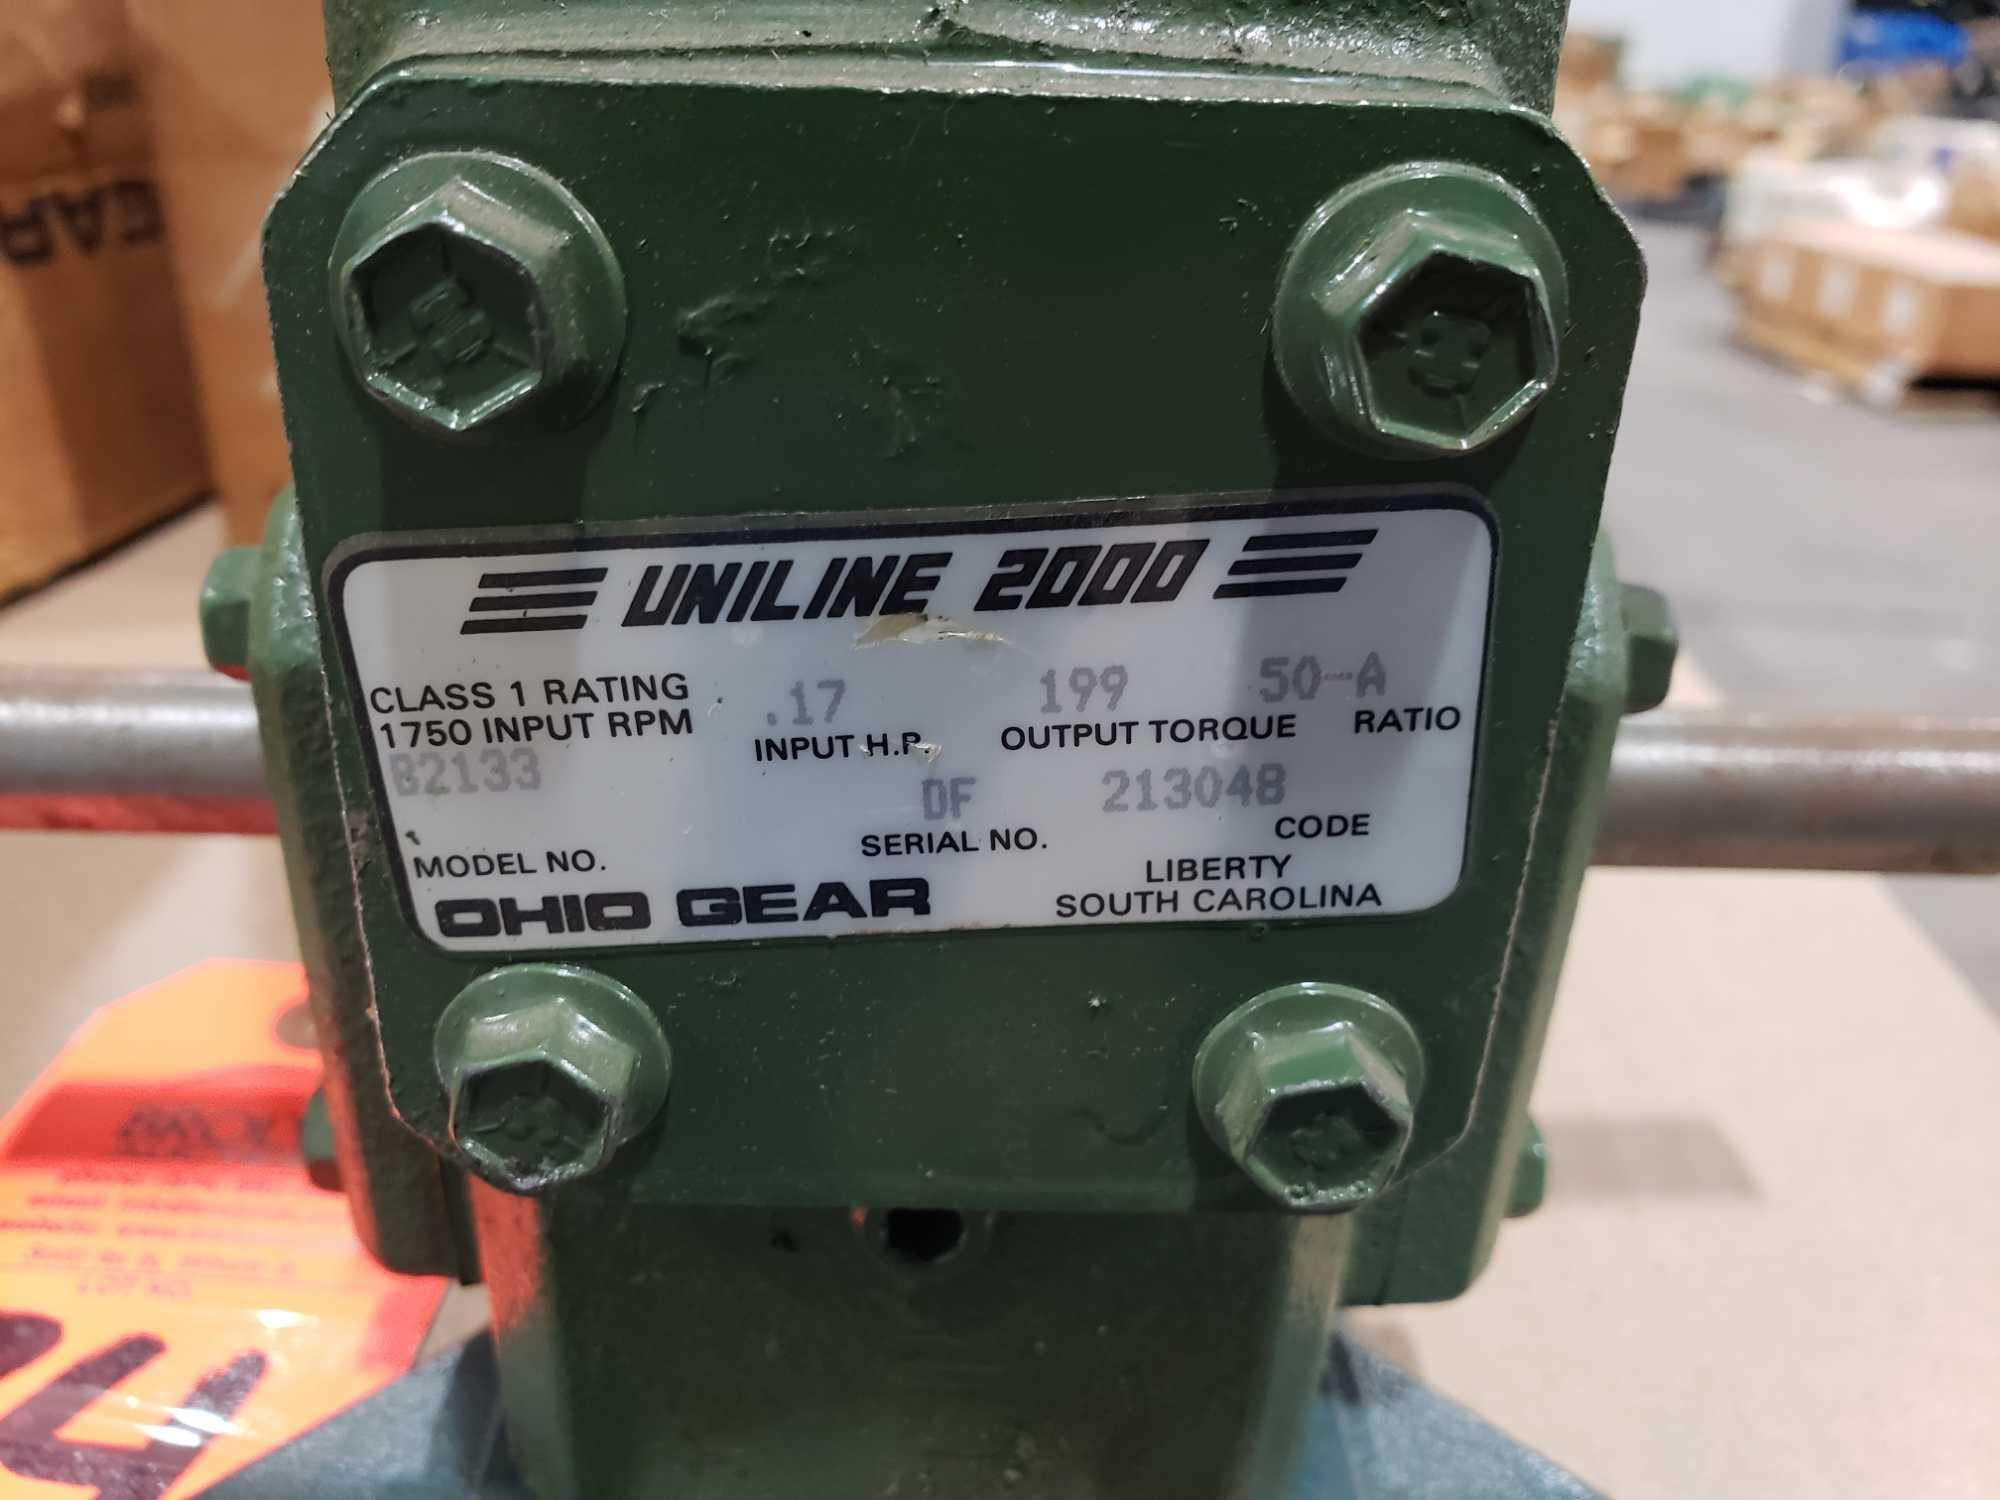 Lot 34 - UniLine 2000 Ohio Gear model B2133, ratio 50-A. New without box.